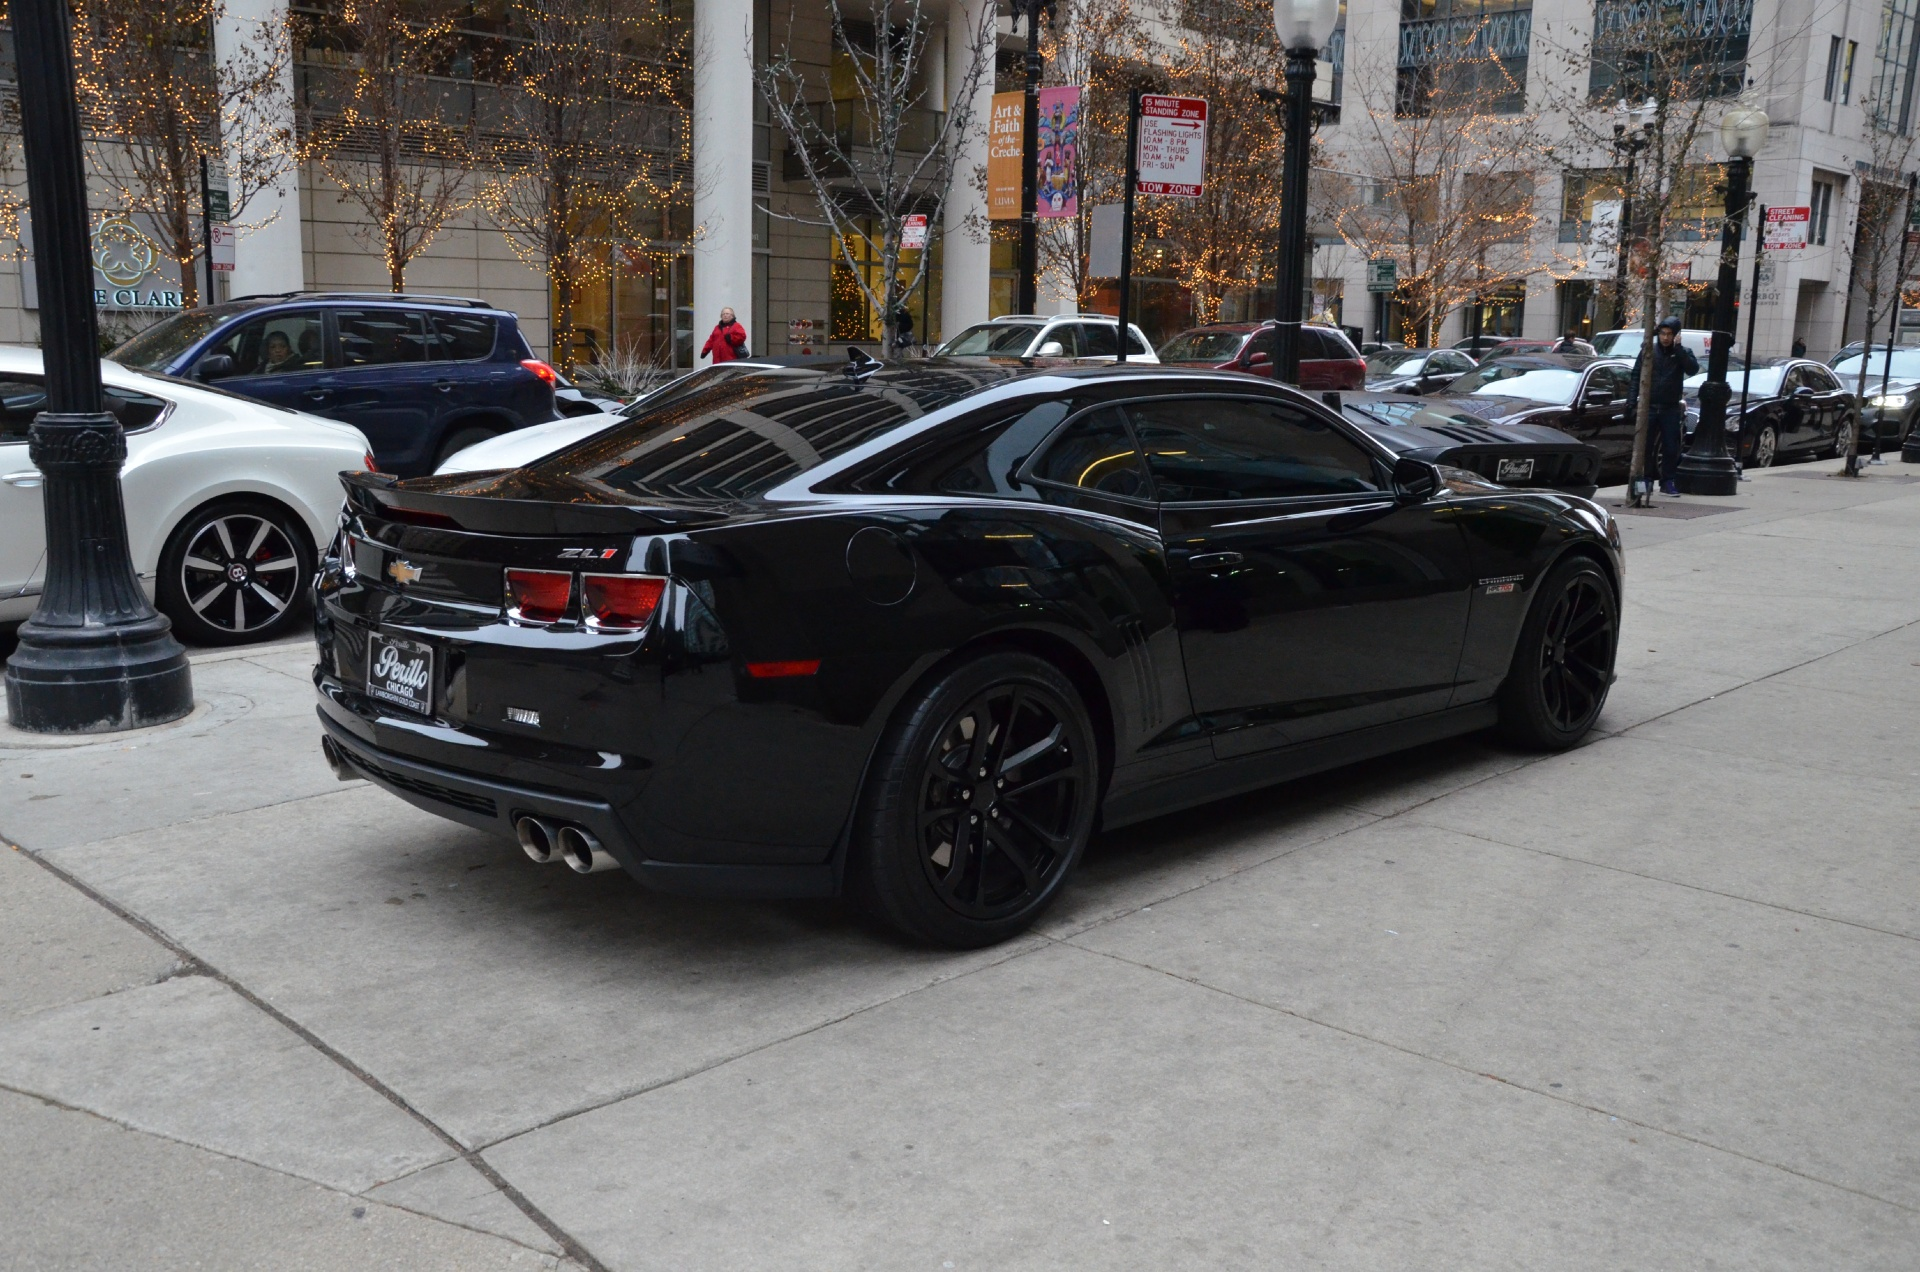 2013 chevrolet camaro zl1 stock l152c for sale near chicago il il chevrolet dealer. Black Bedroom Furniture Sets. Home Design Ideas